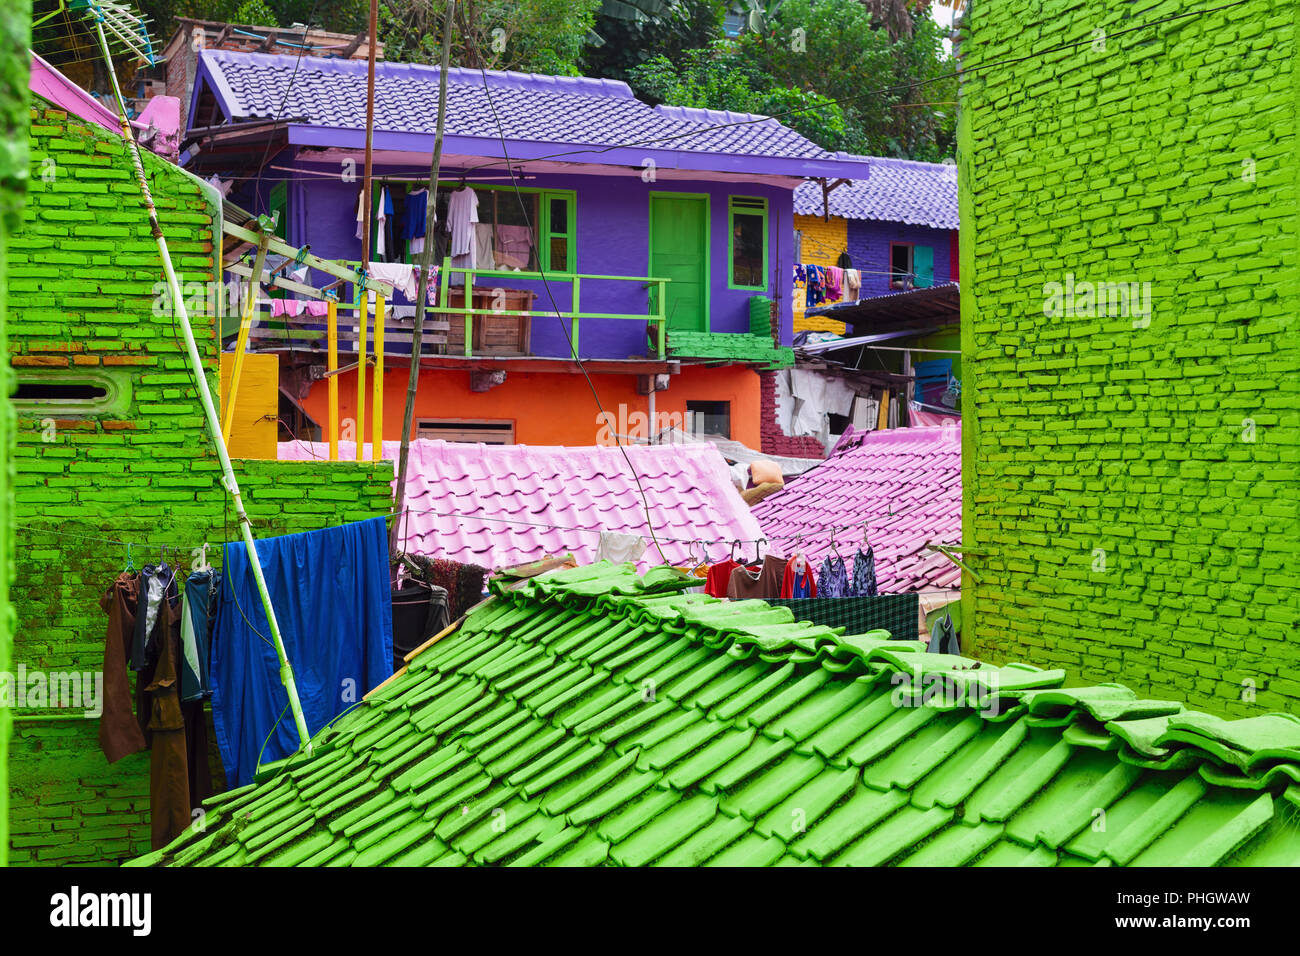 View Of Old Colorful Houses Village With Tiled Roofs Painted